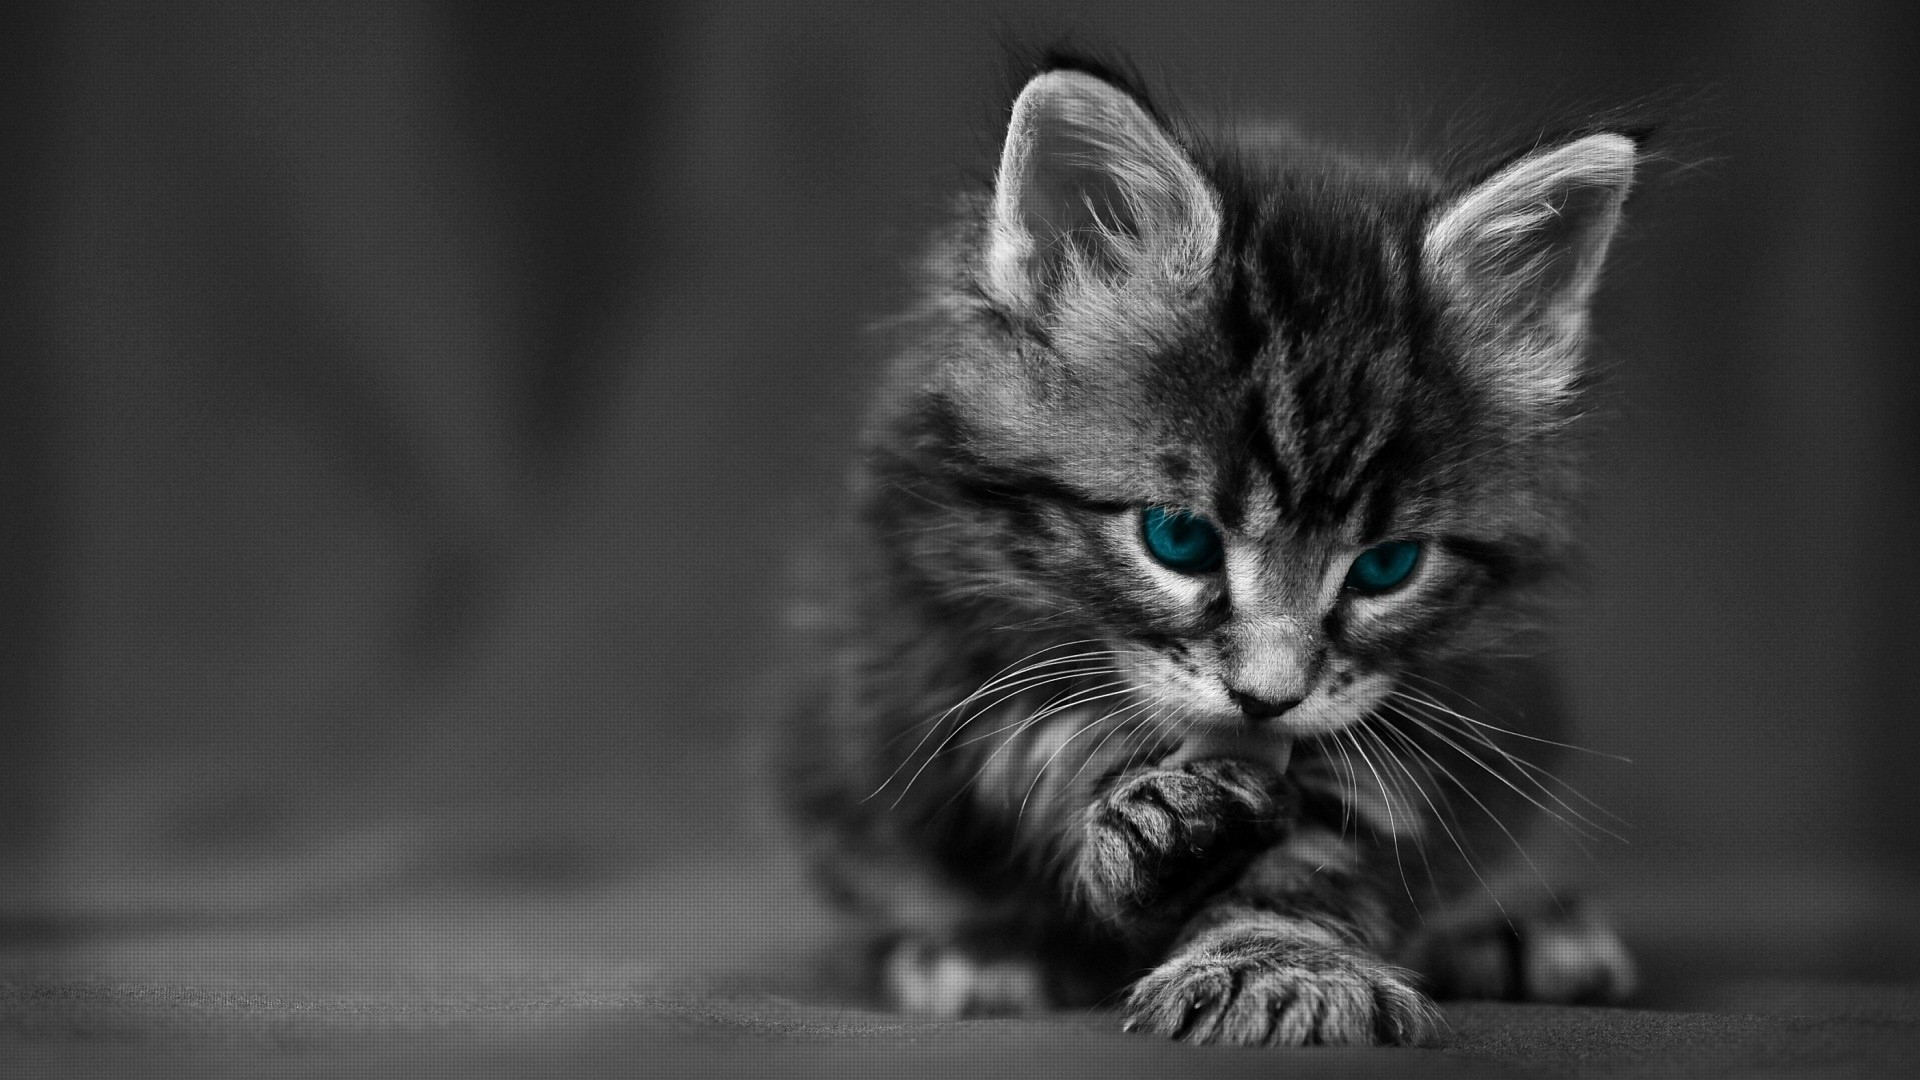 Cat Photos Cute Funny Cat Wallpapers and Image Download 2019